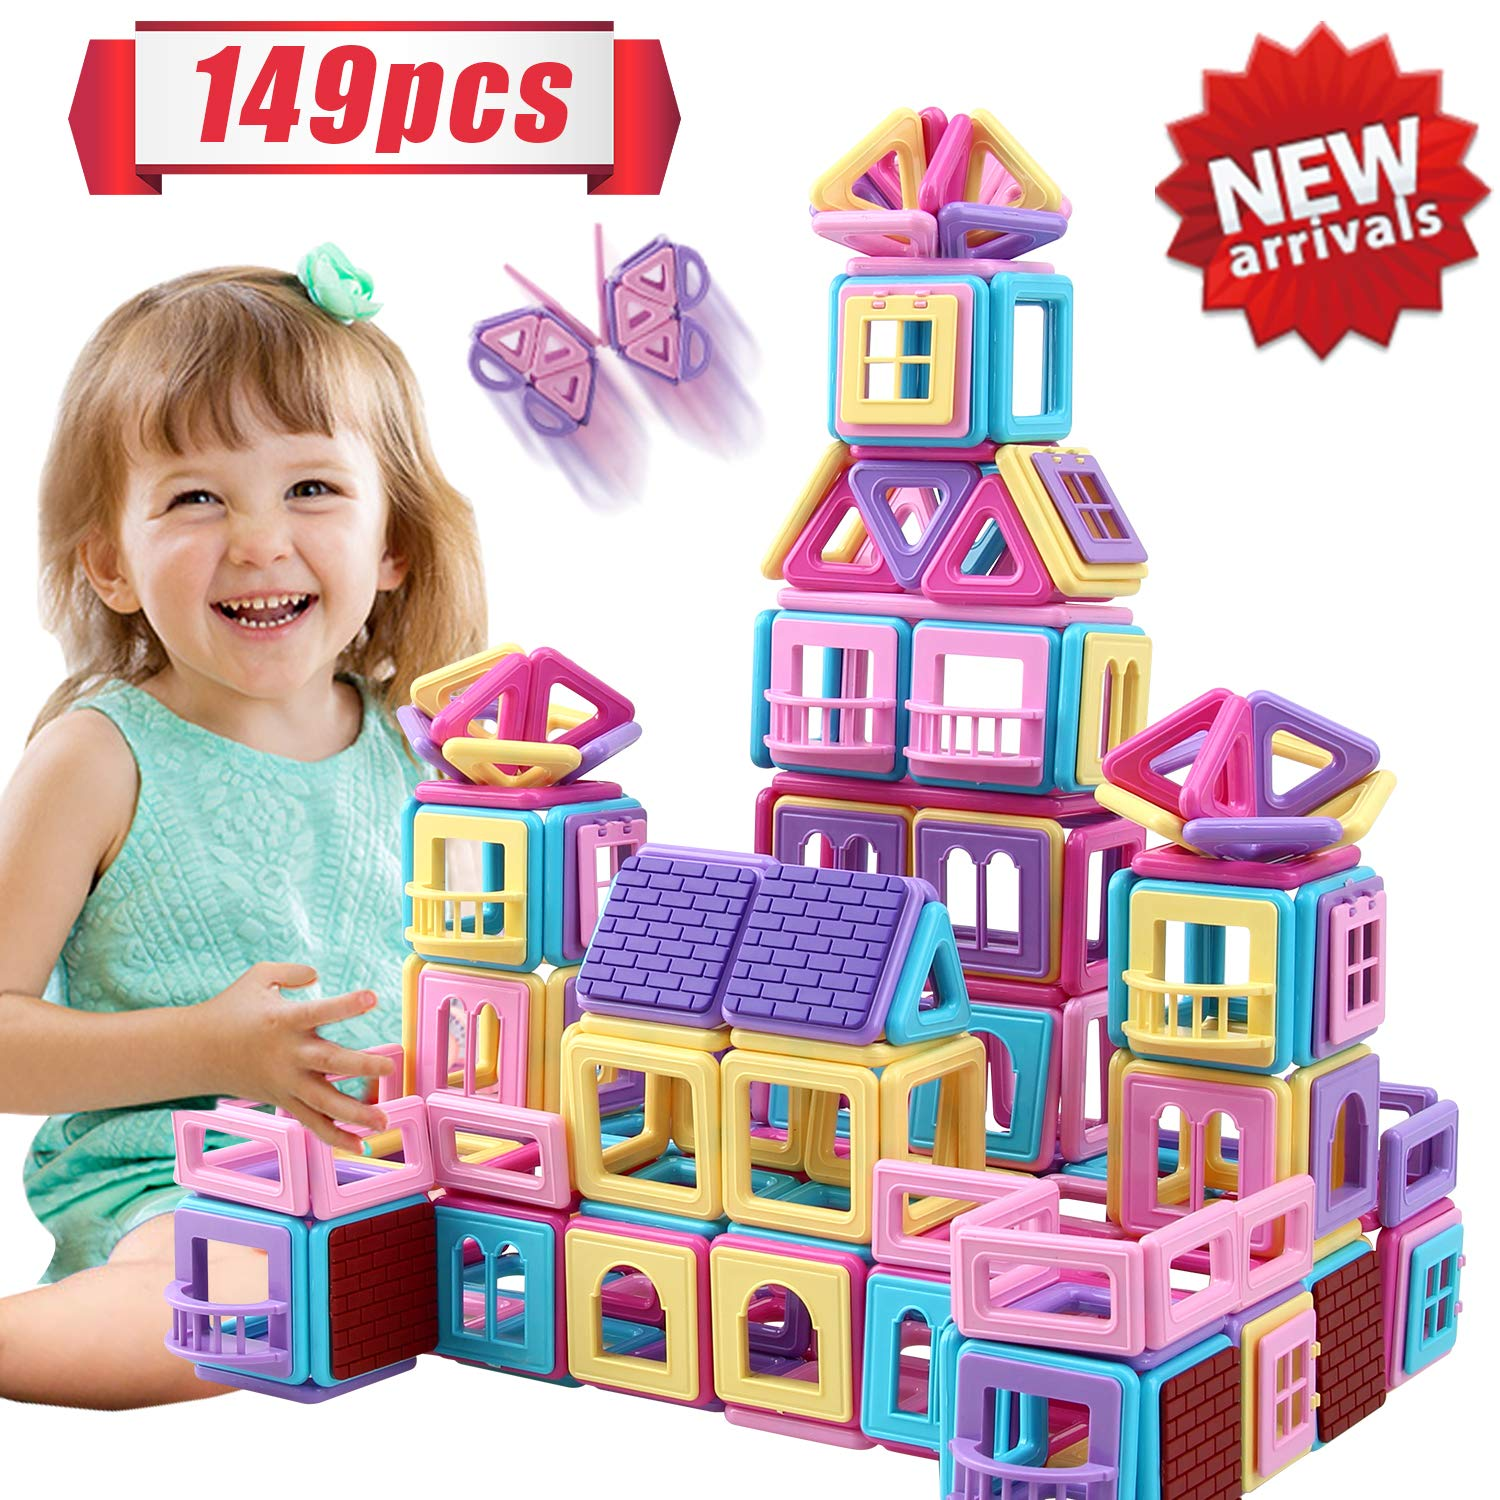 HOMOFY 149PCS Castle Magnetic Blocks for Boys Girls Kids -3D Macaron Colors Learning & Development Magnetic Tiles Building Blocks Toys for 3+ Years Old Toddlers Gifts